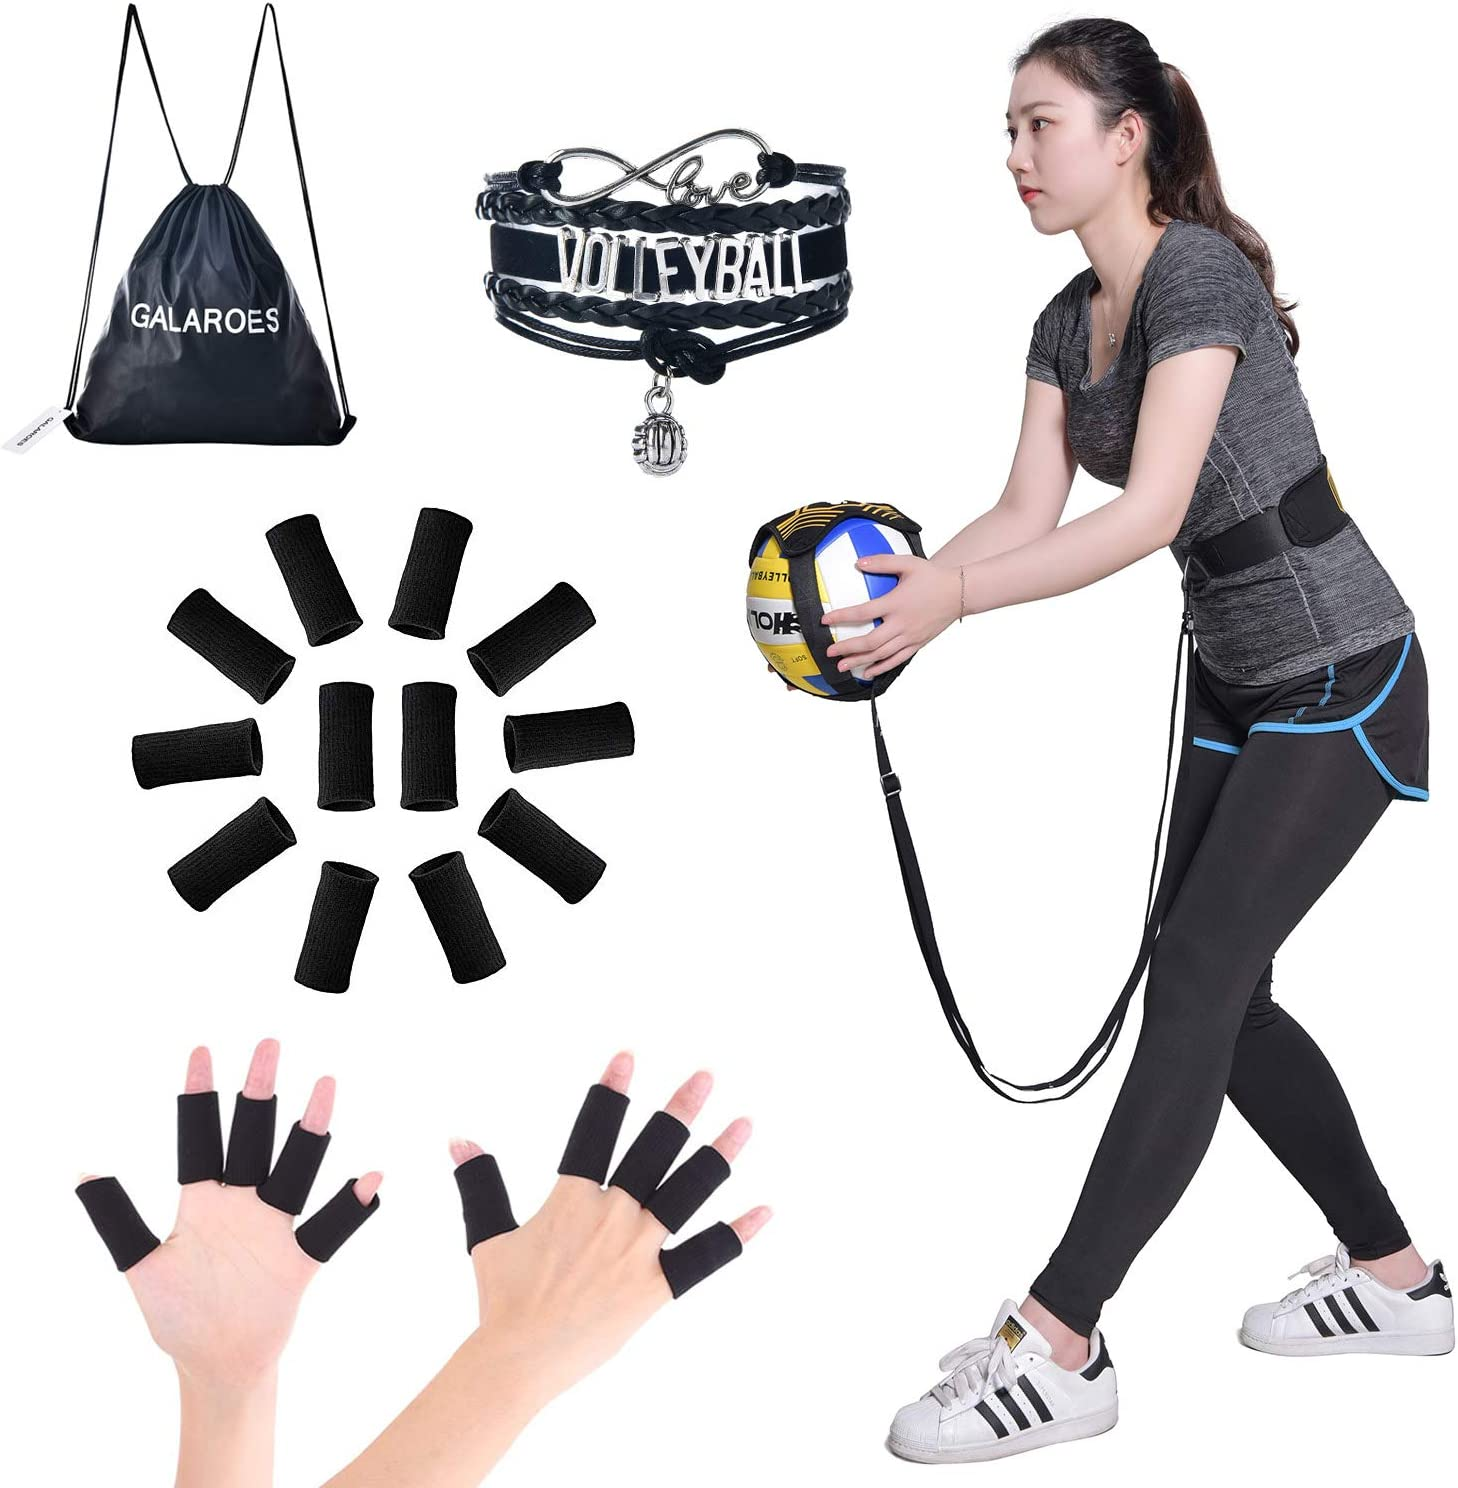 Setting /& Spiking wit Practice Your Serving Volleyball Training Equipment Aid